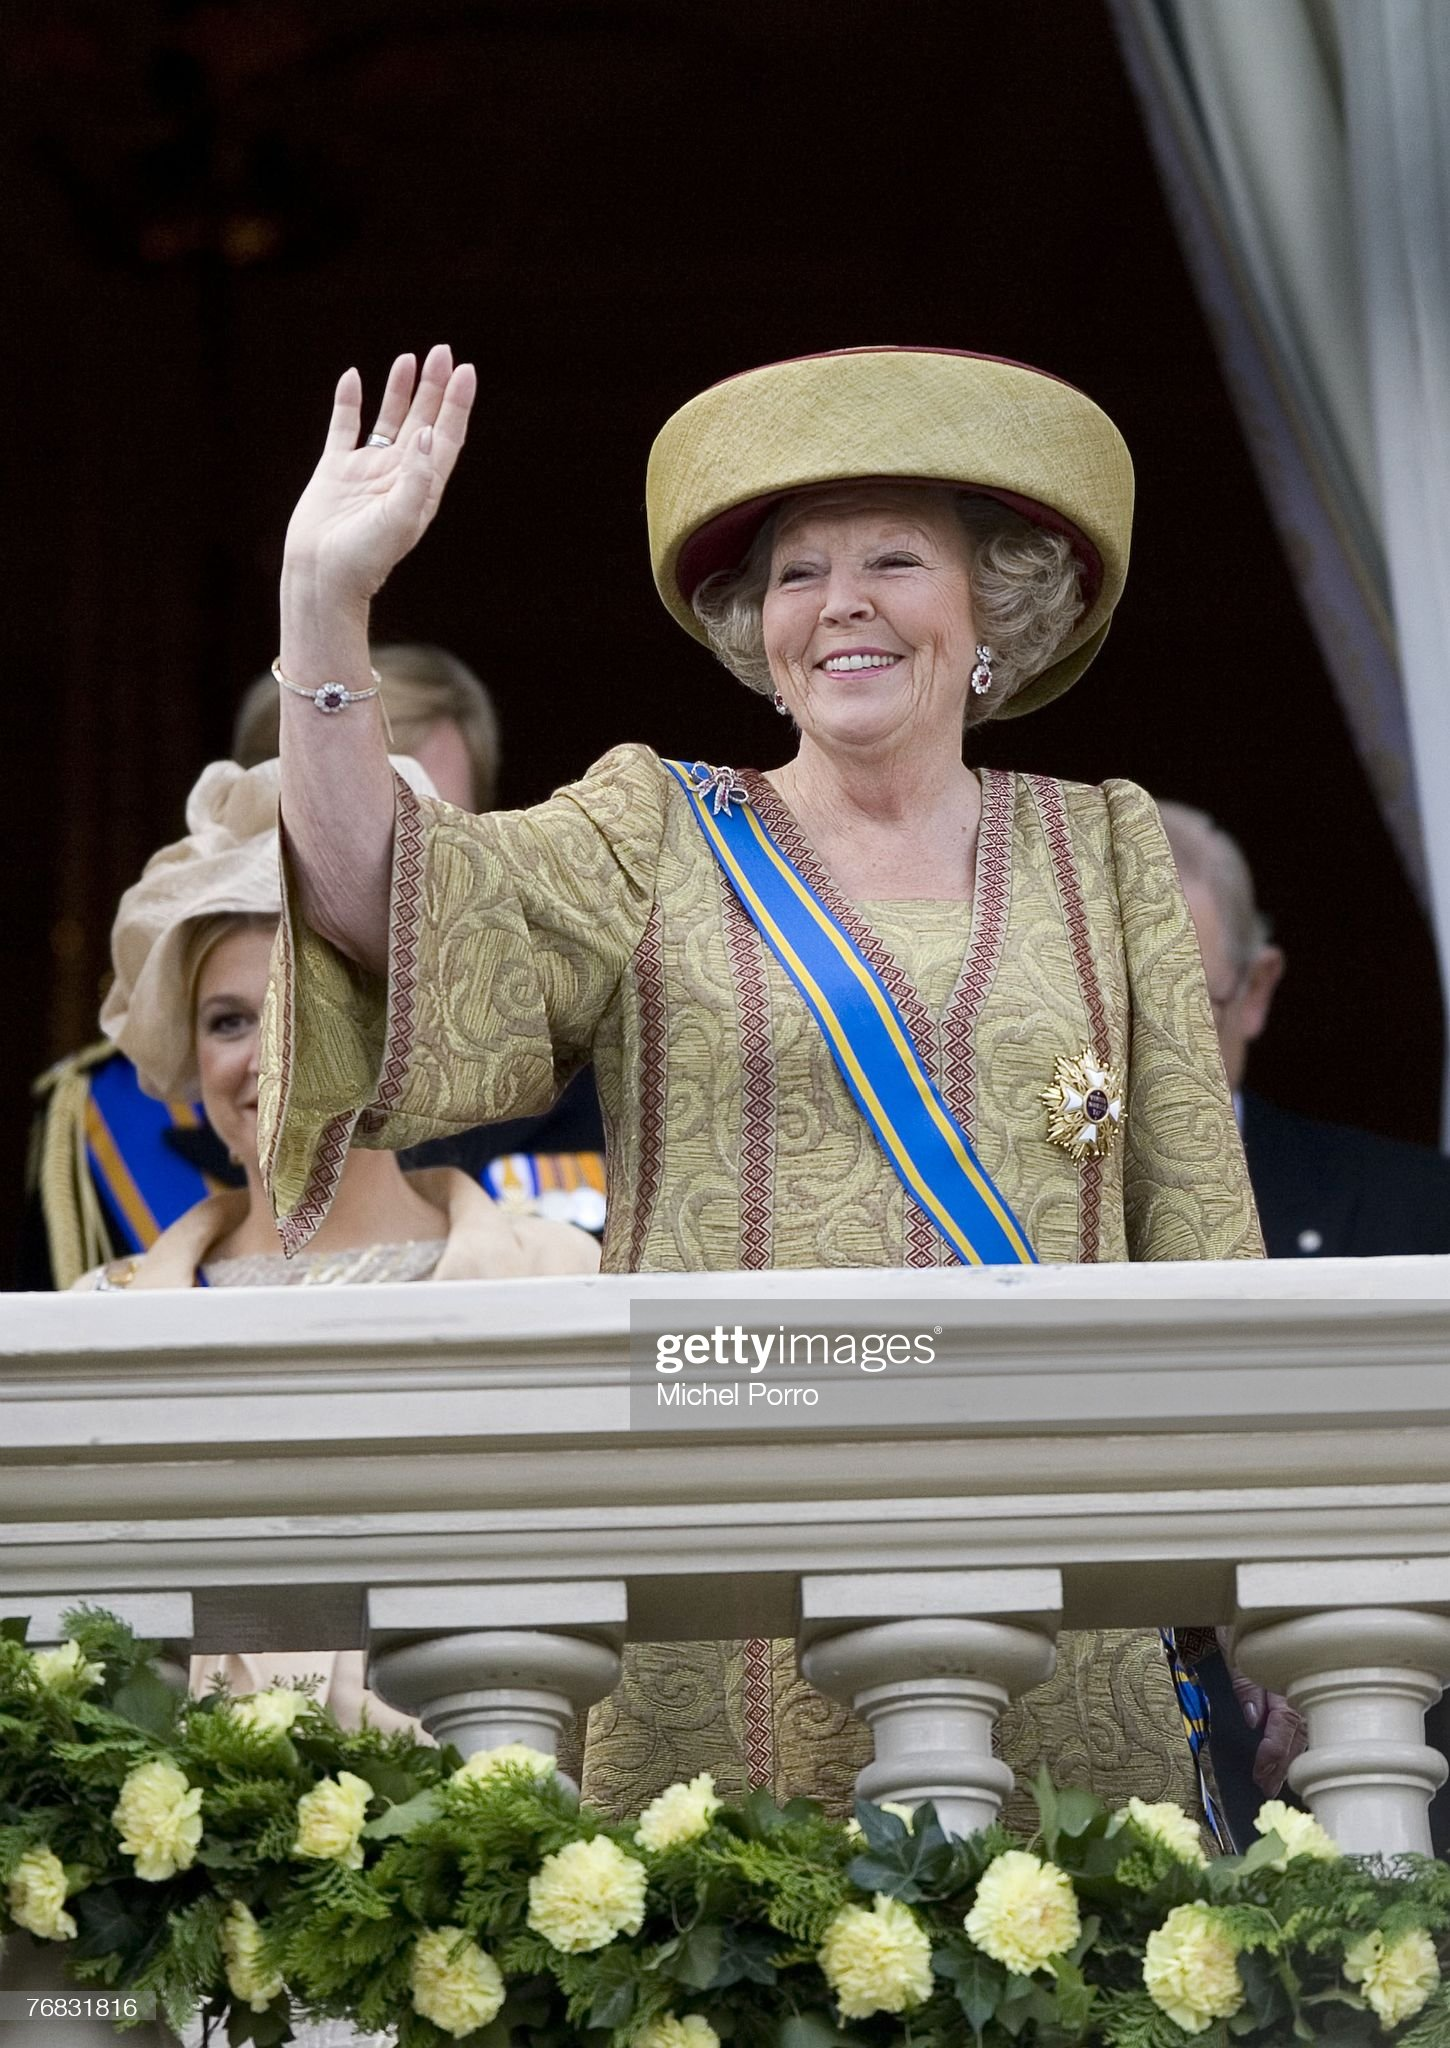 The Dutch Royal Family attends Prince's Day : News Photo